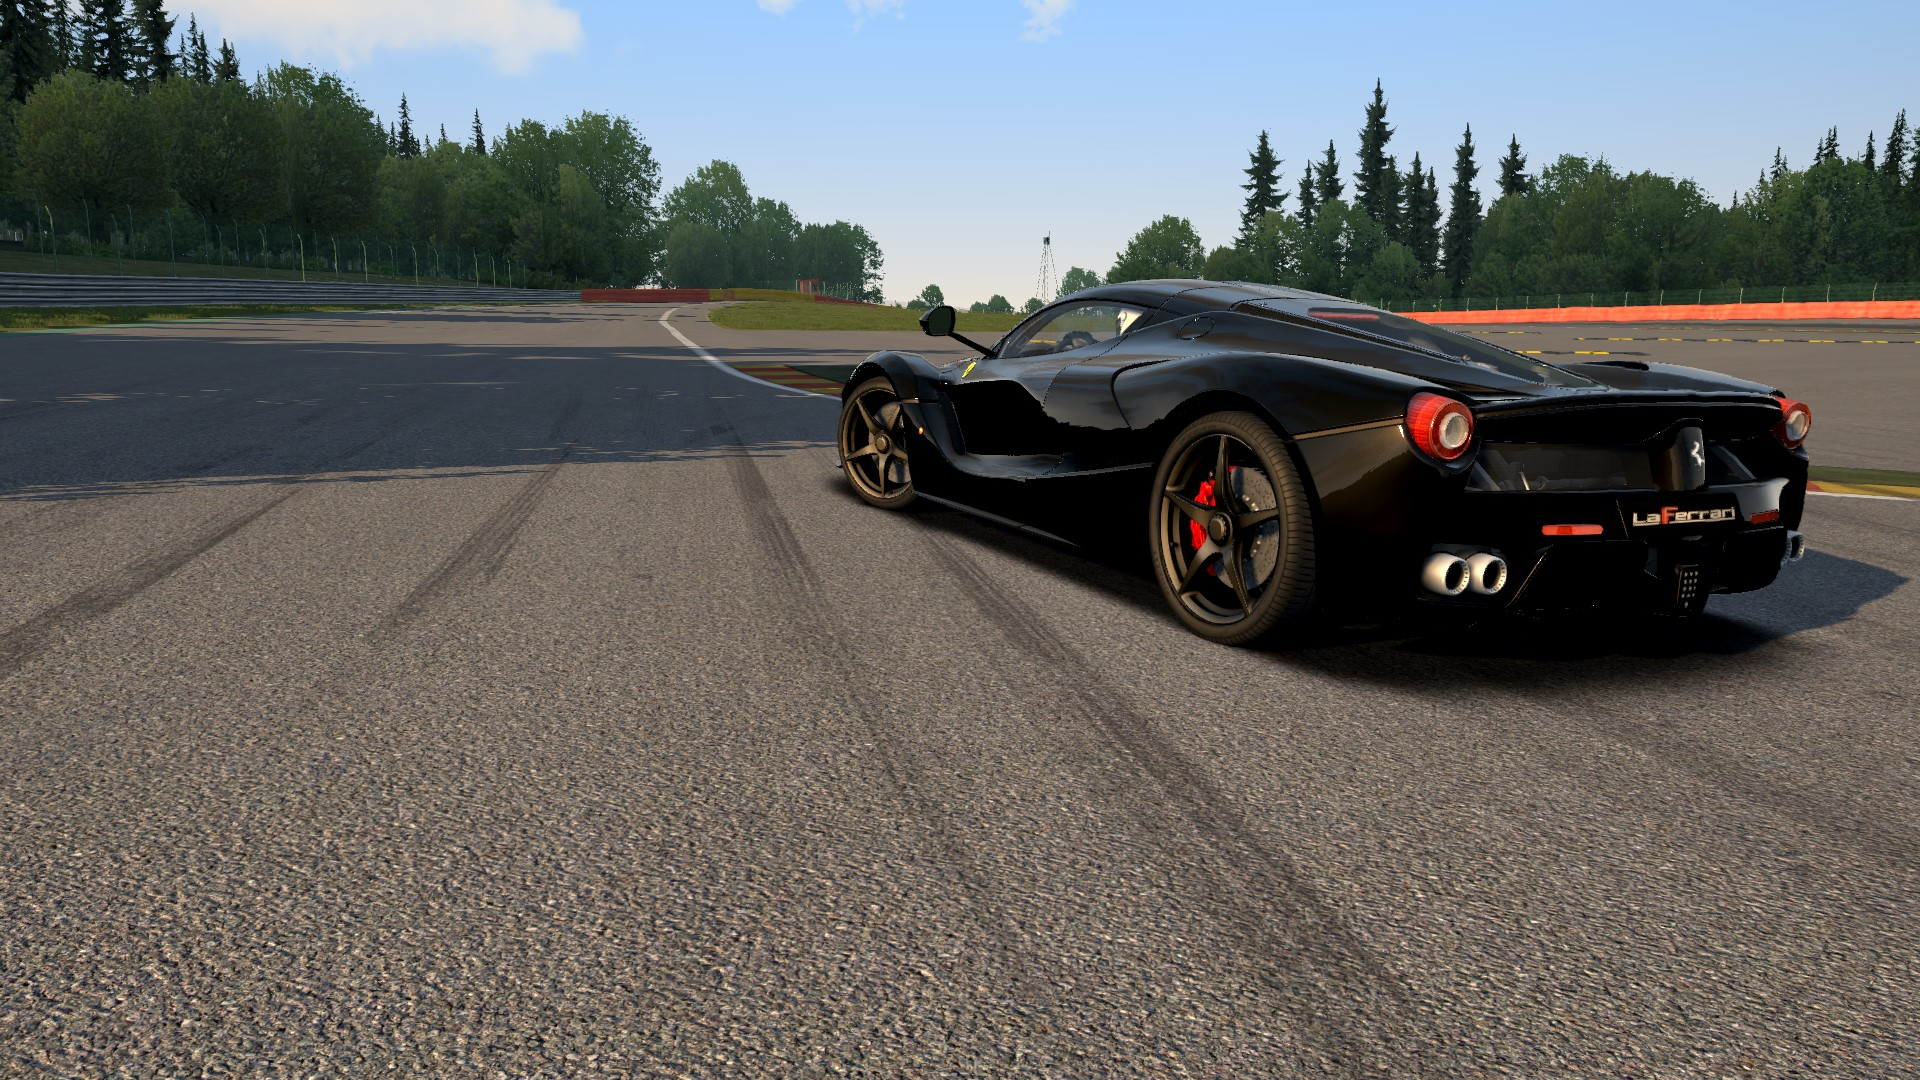 Screenshot_ferrari_laferrari_spa_21-10-2014-15-27-35.jpg